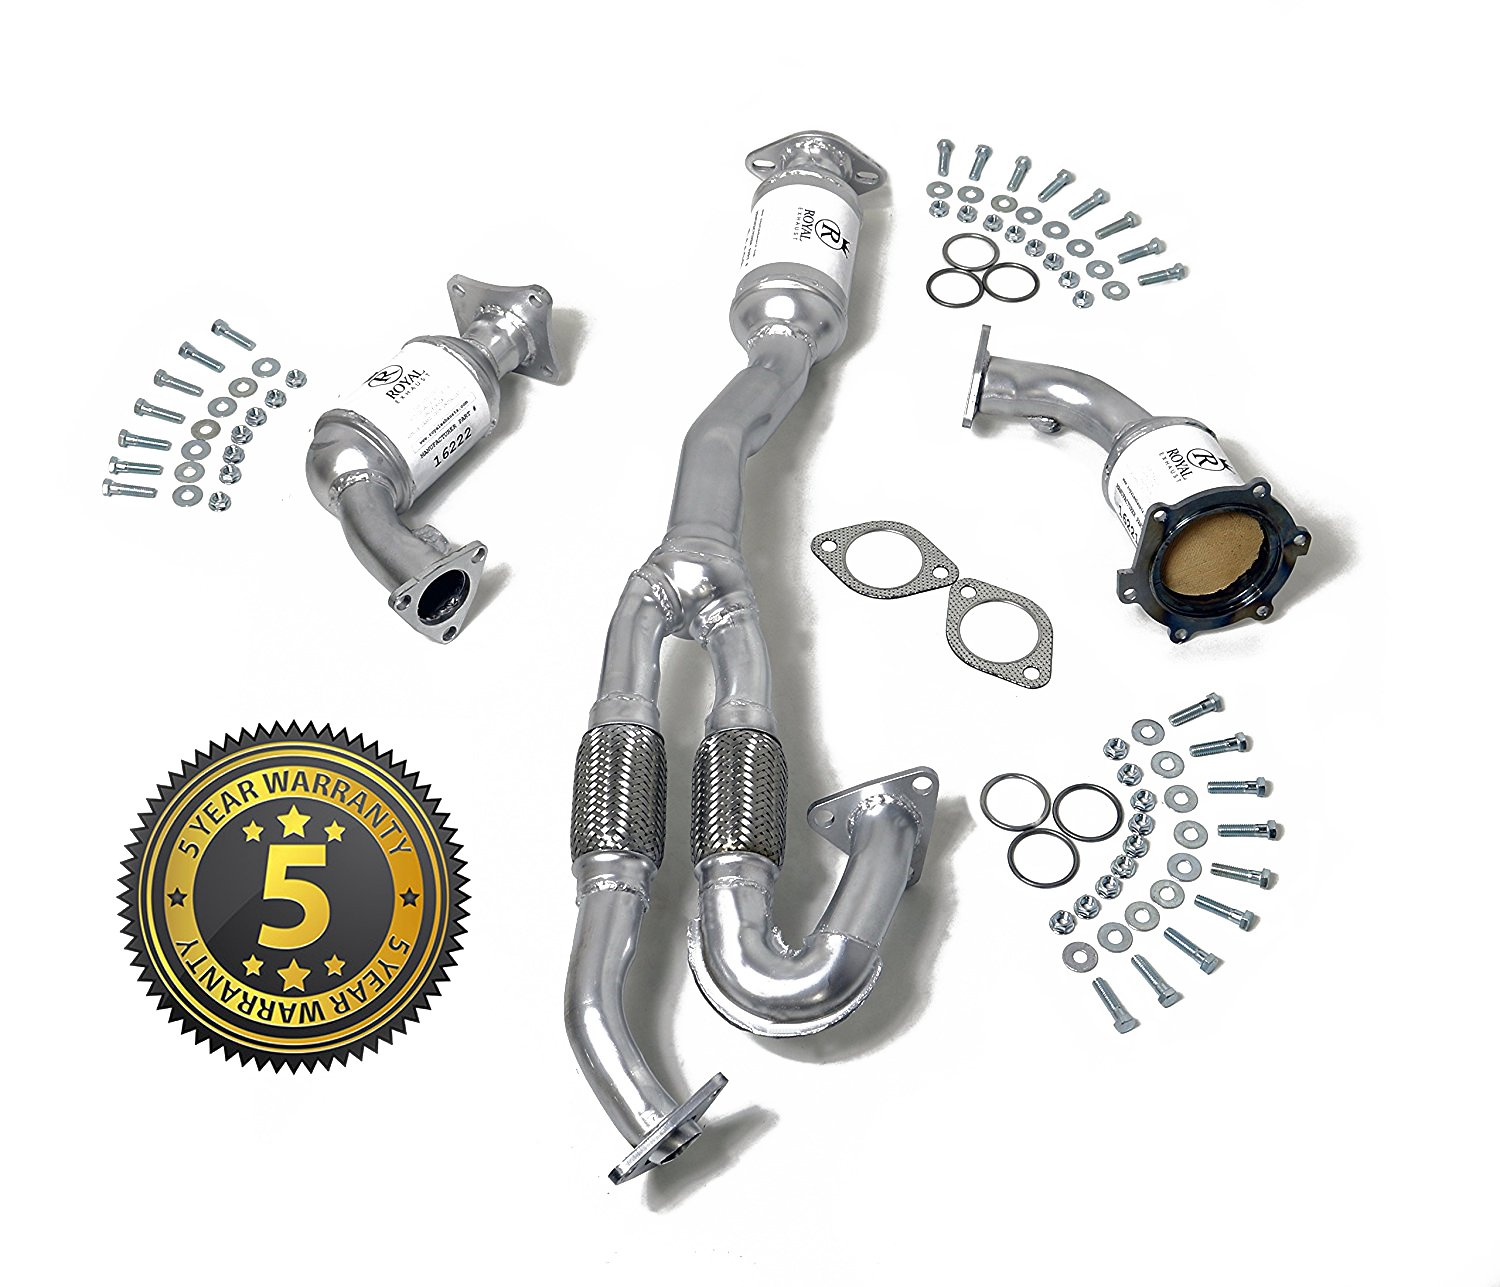 Amazon com royal exhaust 54498 nissan murano 3 5l flex pipe catalytic converter complete set obdii direct fit 2003 2007 5 year warranty gaskets included